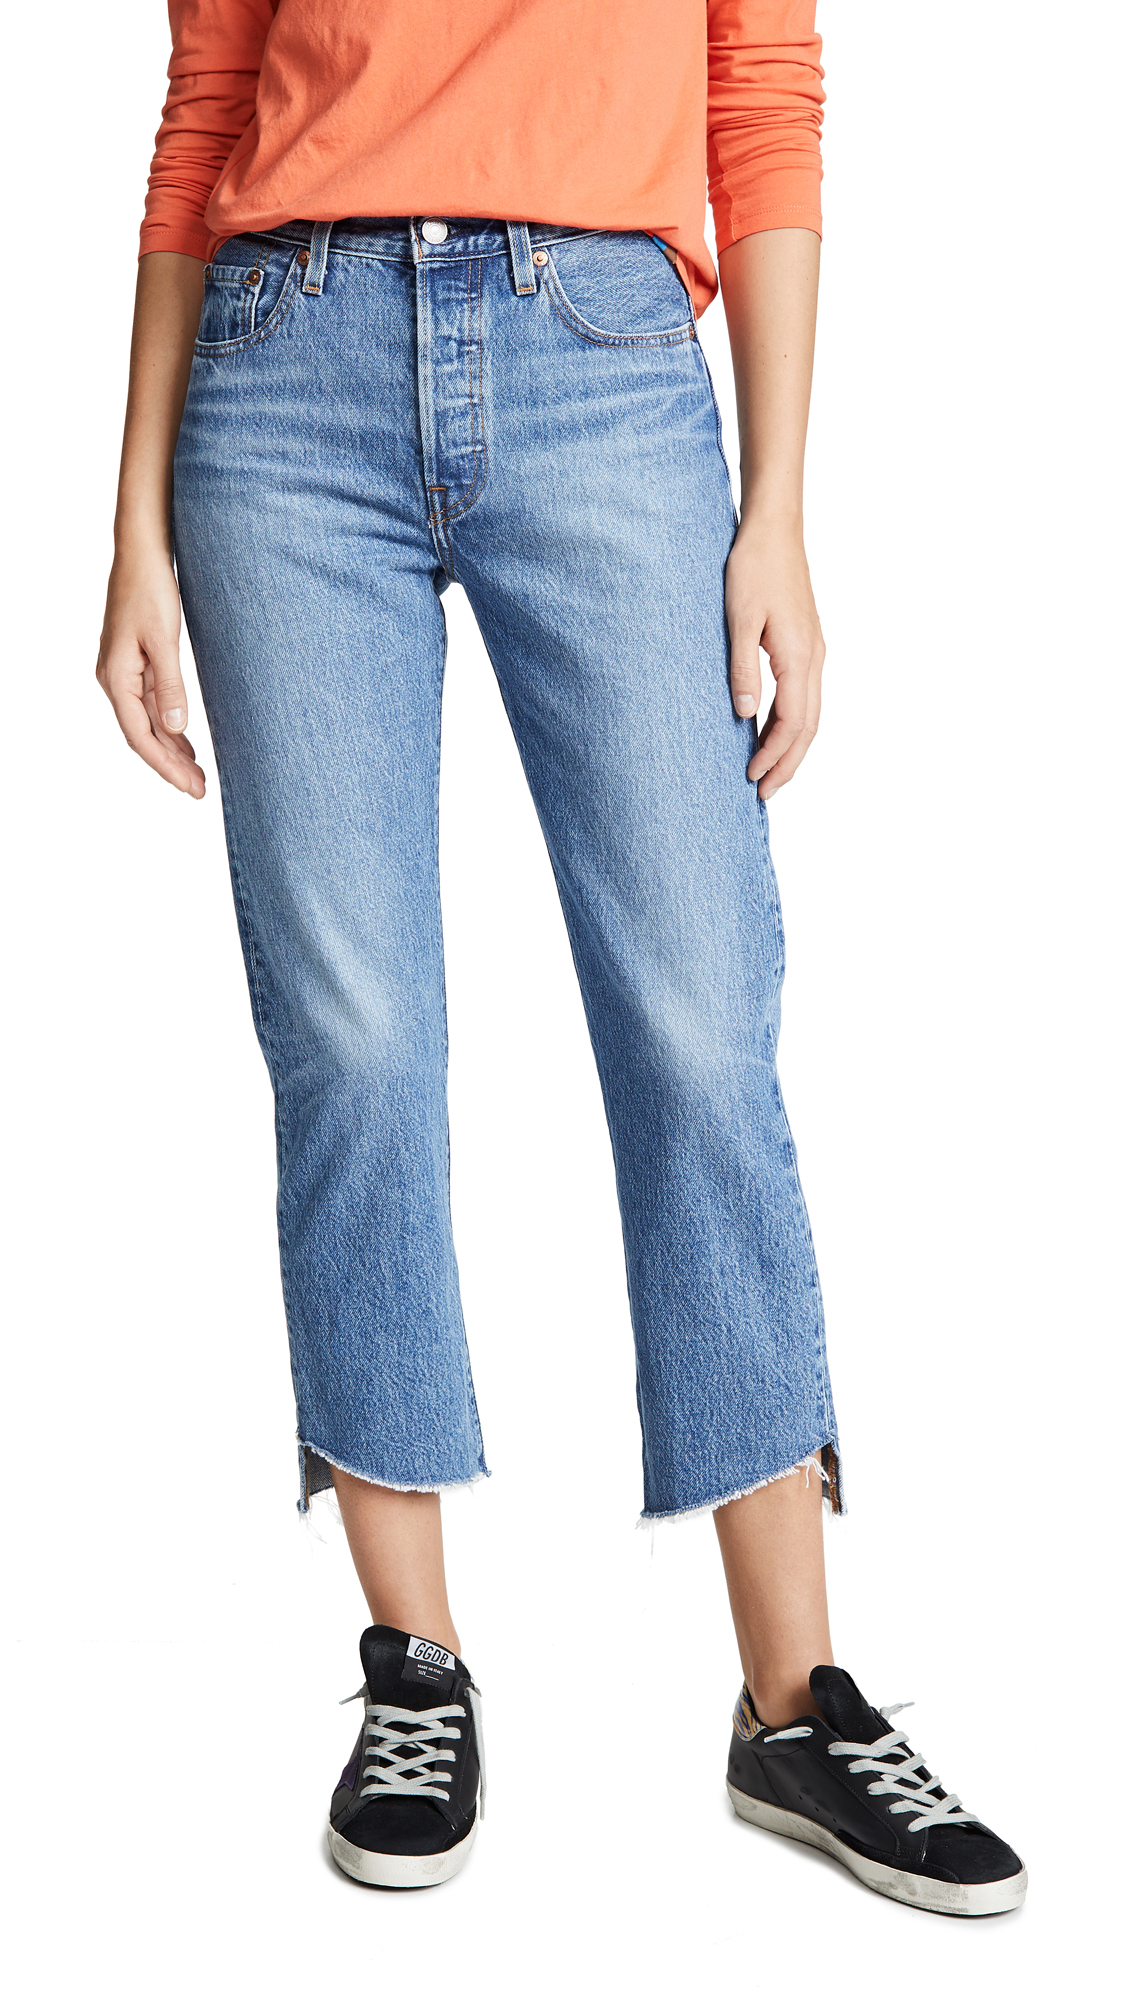 Levis 501 Crop Jeans - Call Me Crazy